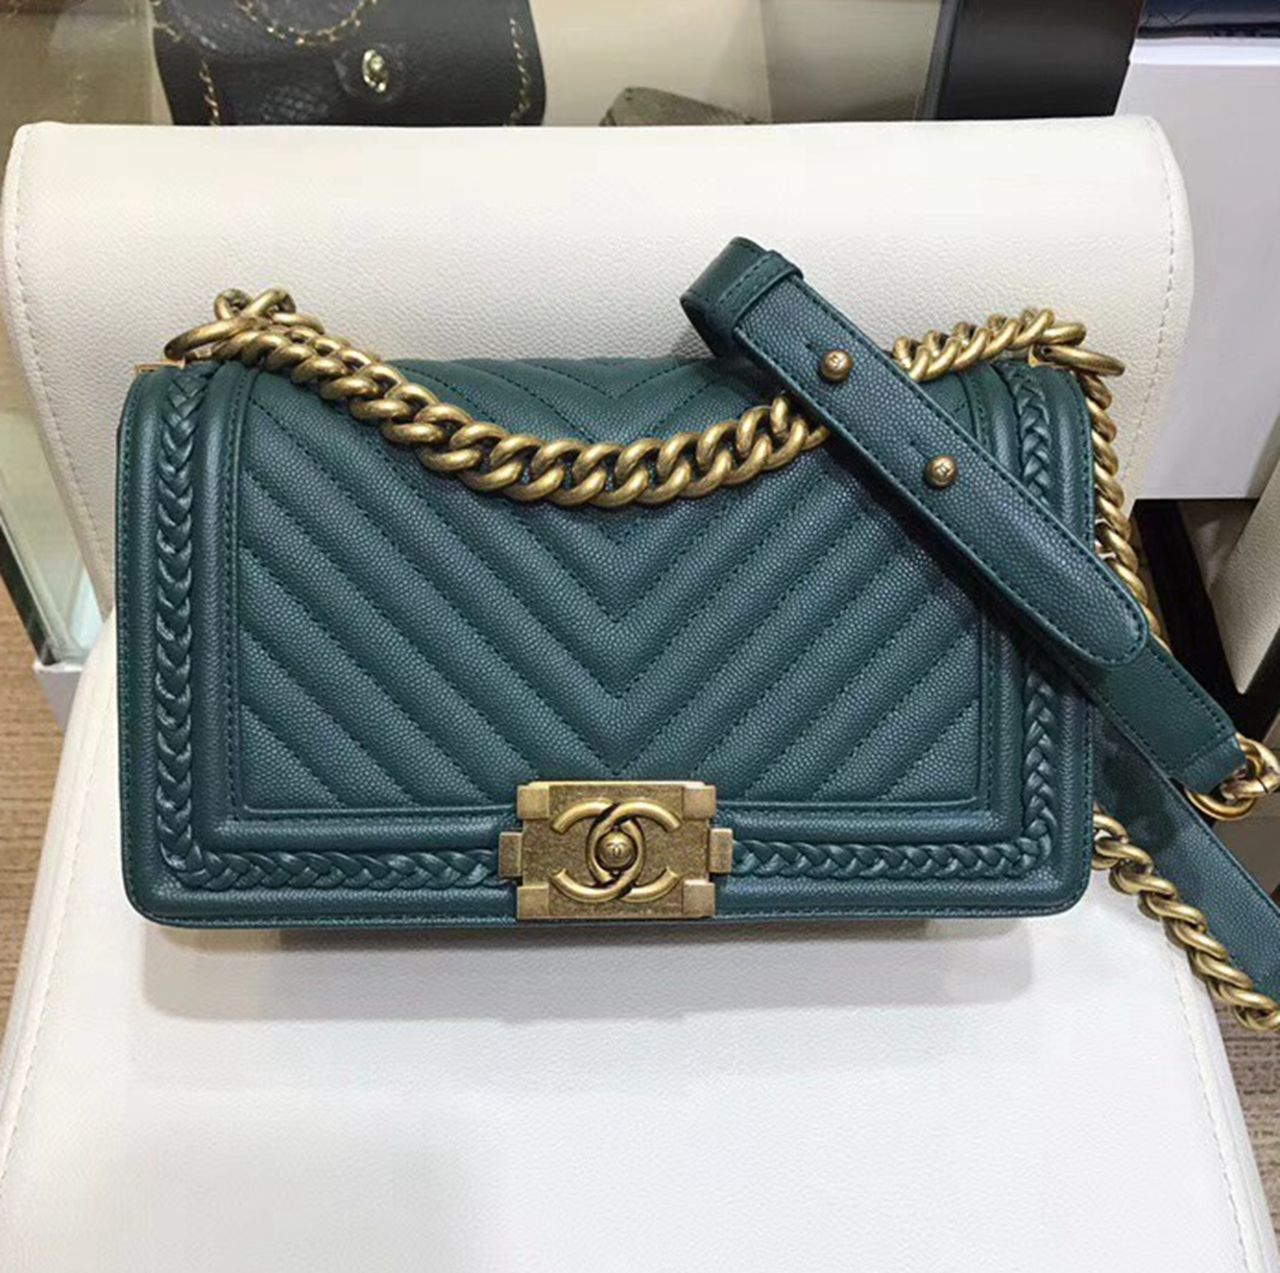 Chanel Chevron Boy Braided Old Medium Flap Bag A67086 Green Curise  2018(Top) 5ff2ecebc877a